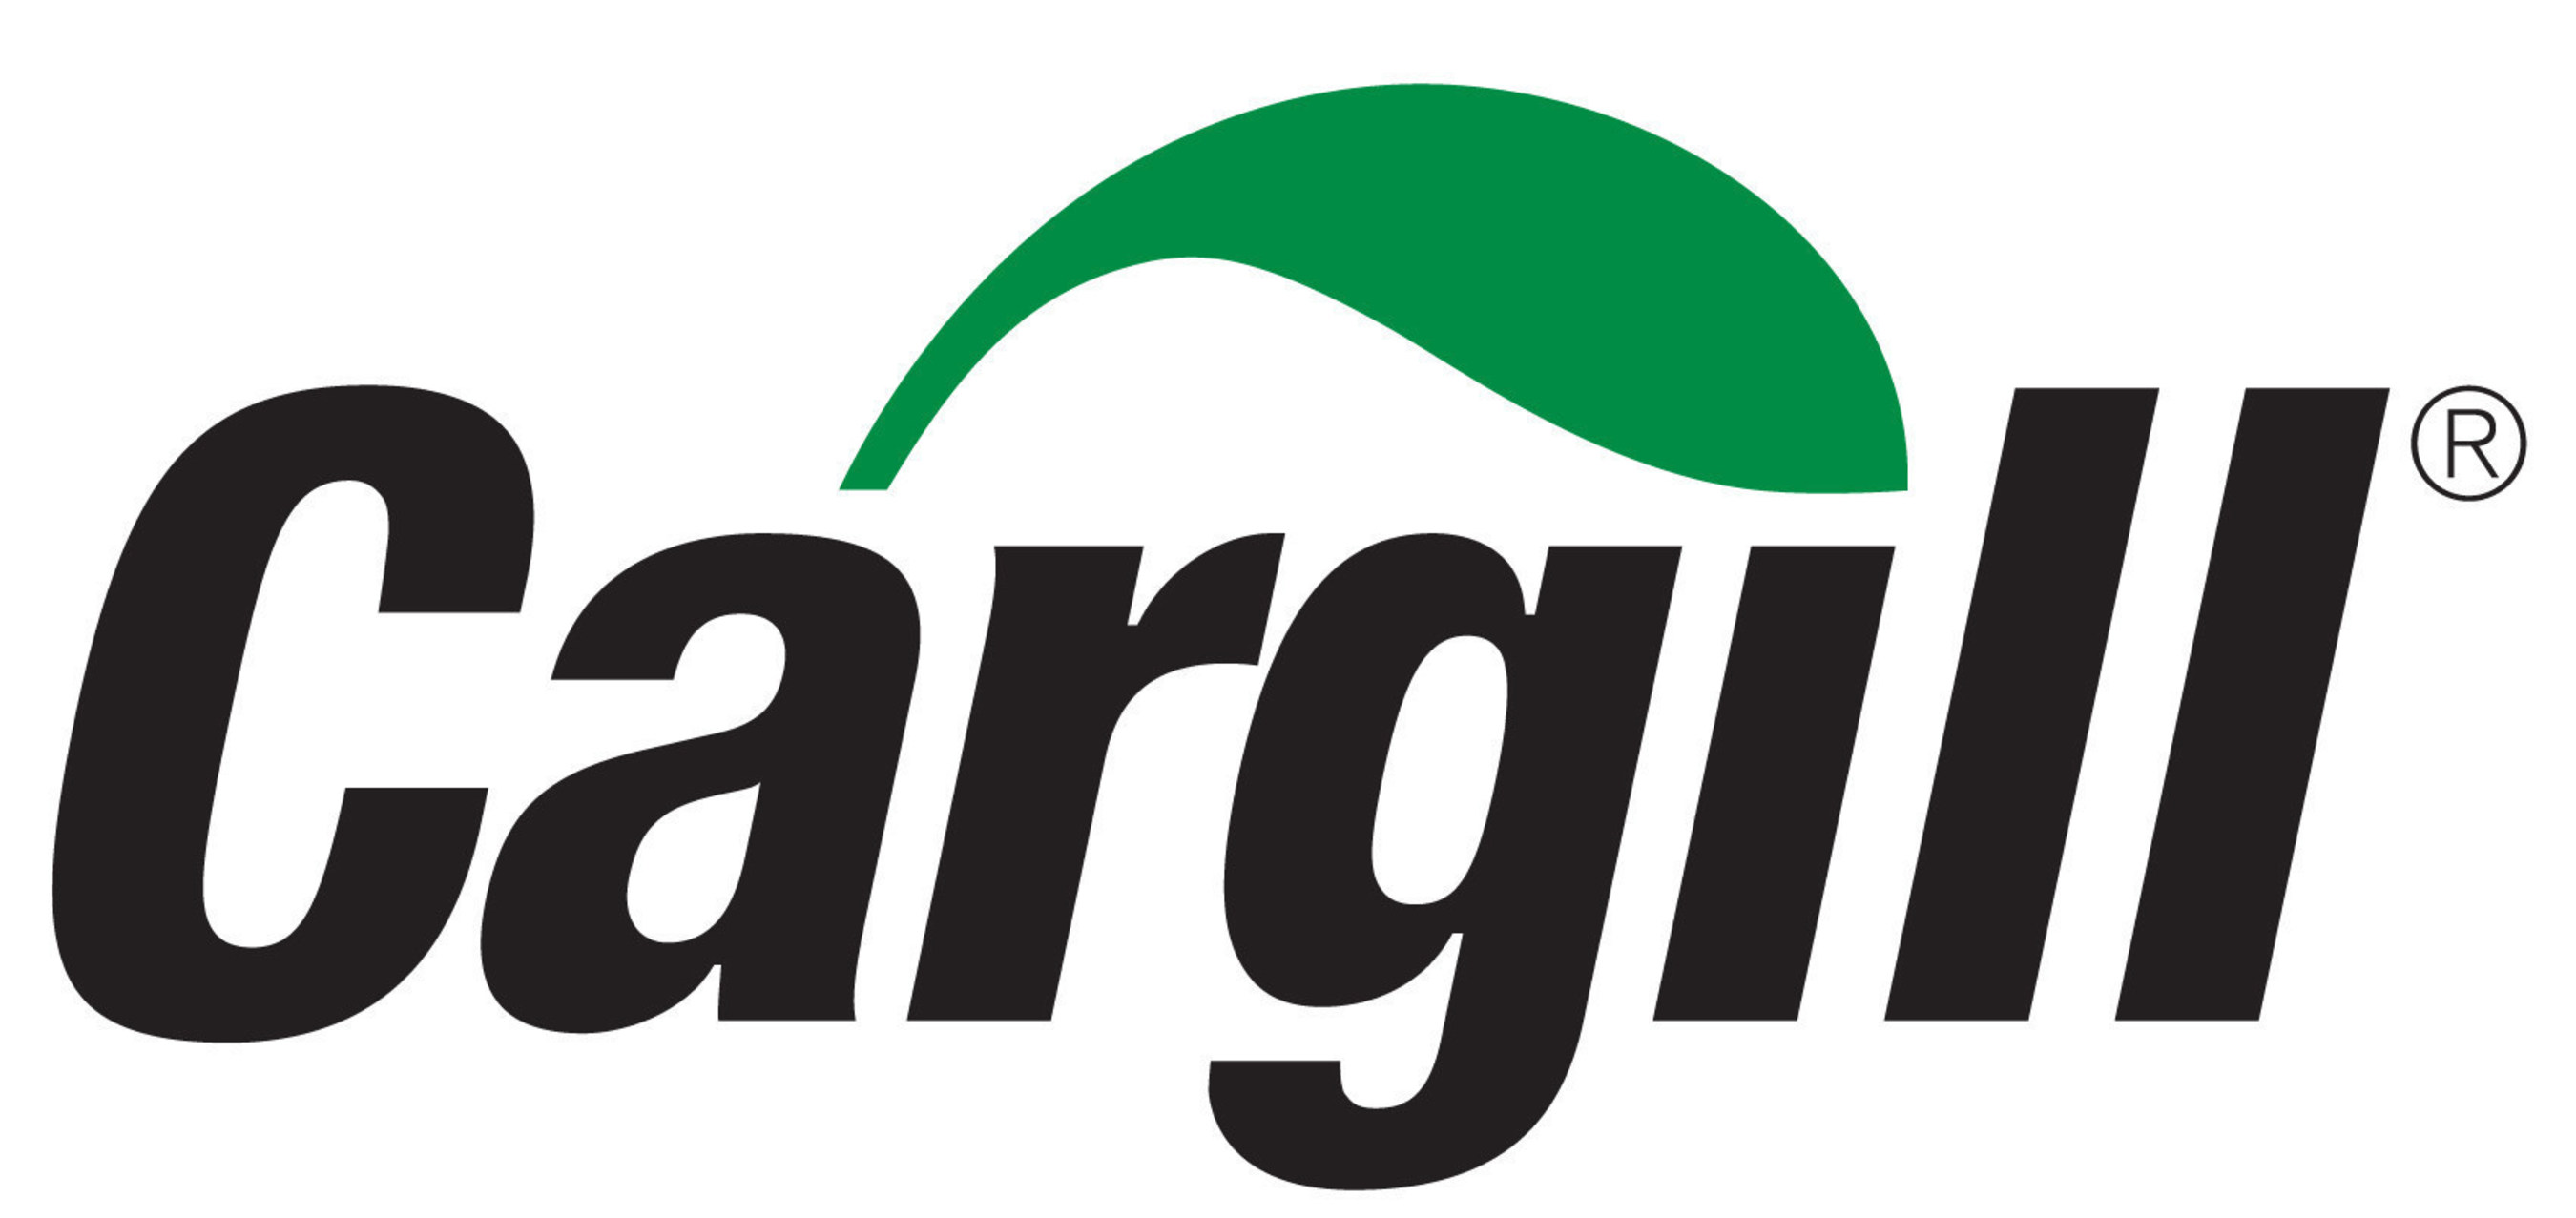 Cargill Trans Pacific Partnership Trade Agreement Has Potential To